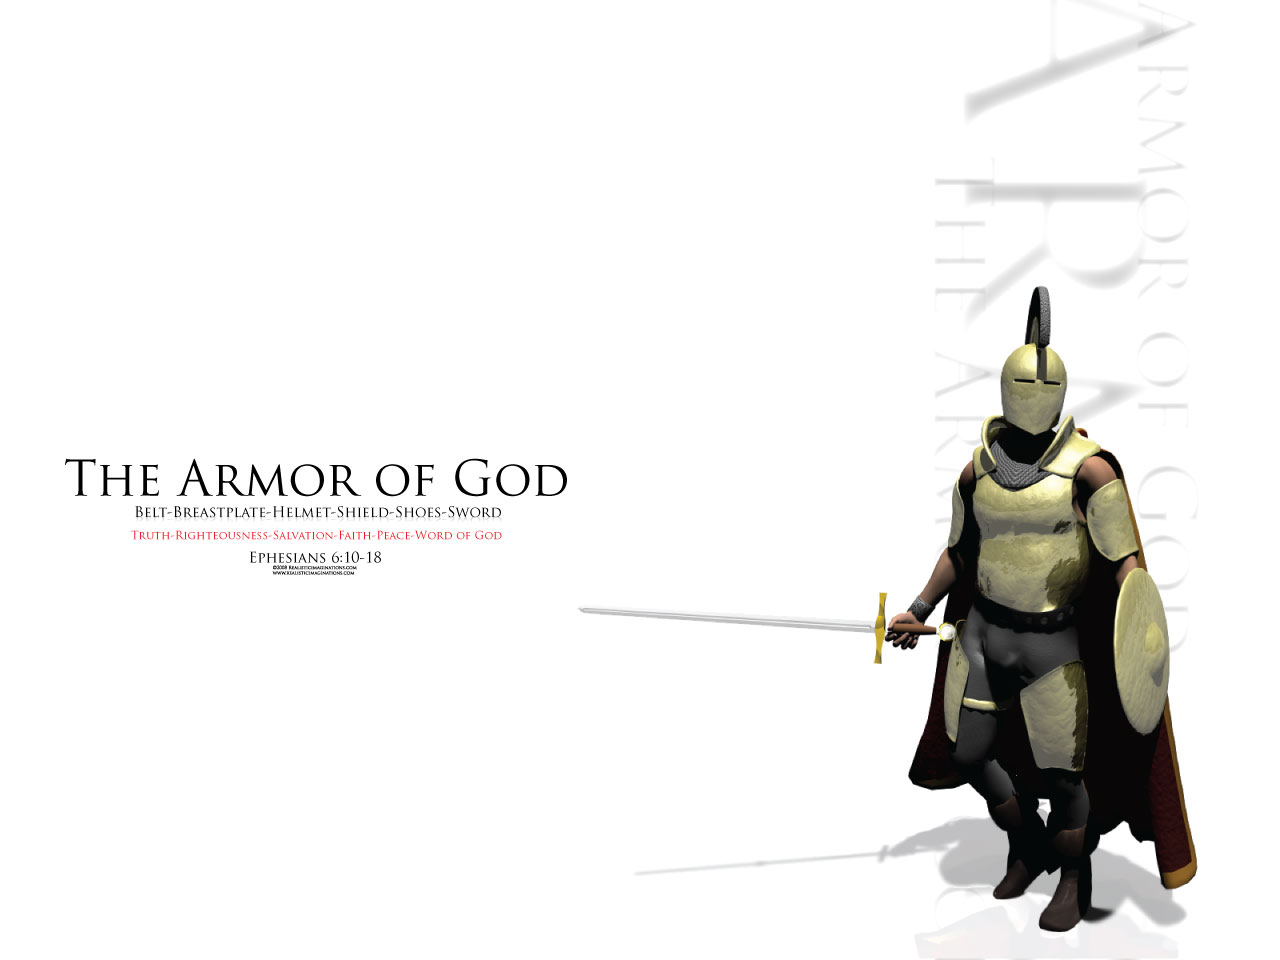 Armor of god wallpaper christian wallpapers and backgrounds - Armor of god background ...